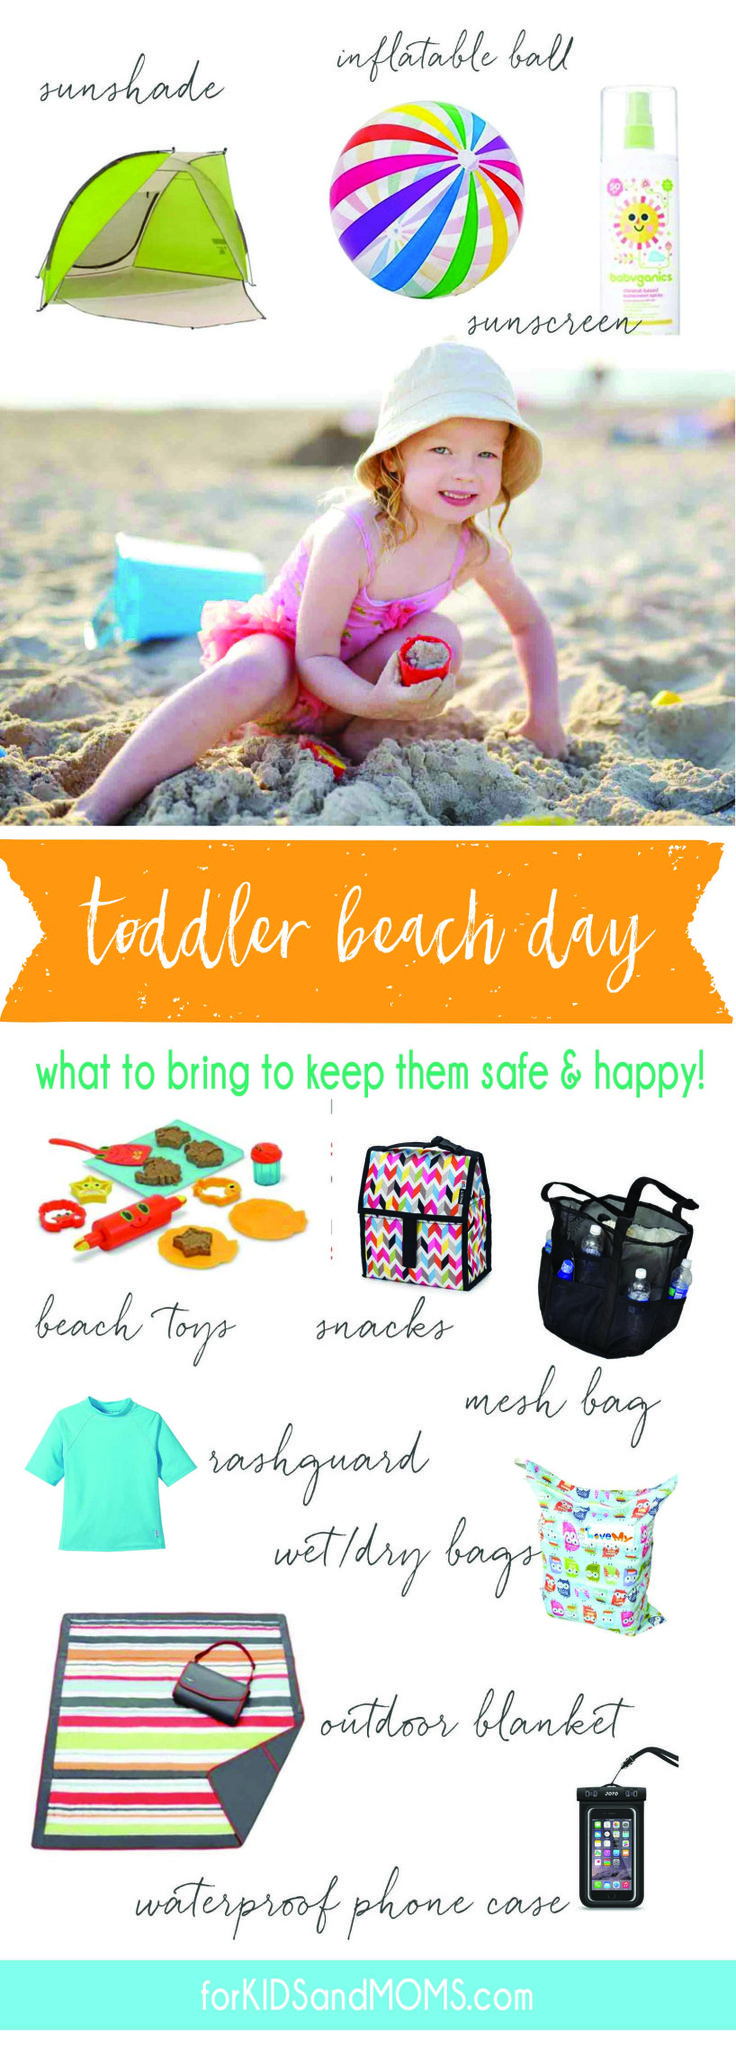 What to Bring to the Beach  Checklist for Vacationing with a Toddler via @forkidsandmoms beach vacation checklist, toddler beach bag checklist, family vacation checklist, what to pack list